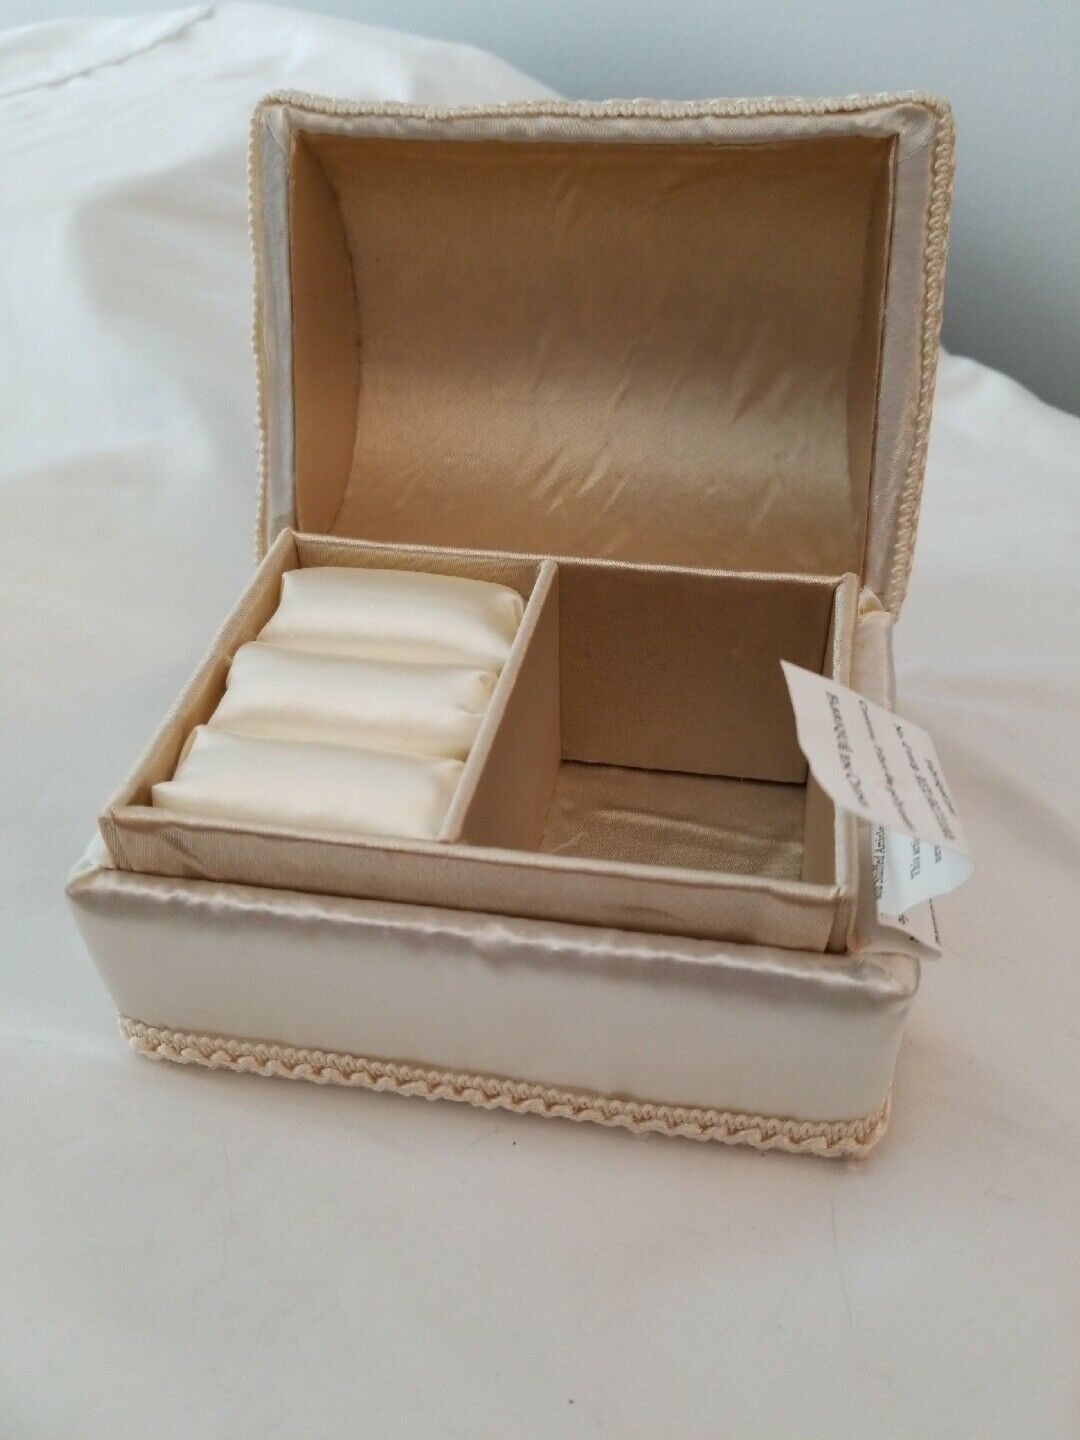 Primary image for Popular Creations Wedding Padded Jewelry Box - Ivory with Box